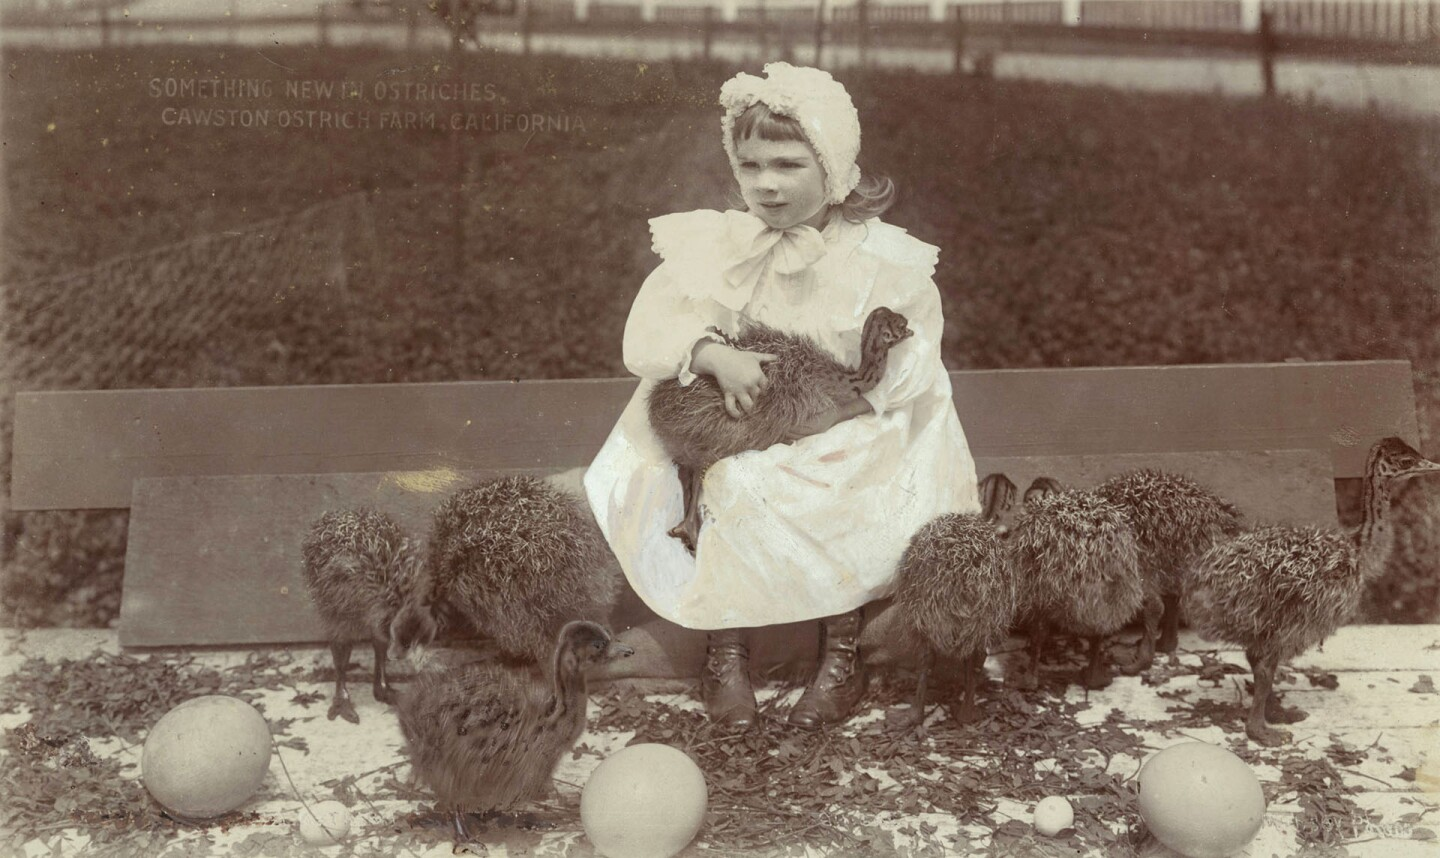 A little girl holding baby ostriches